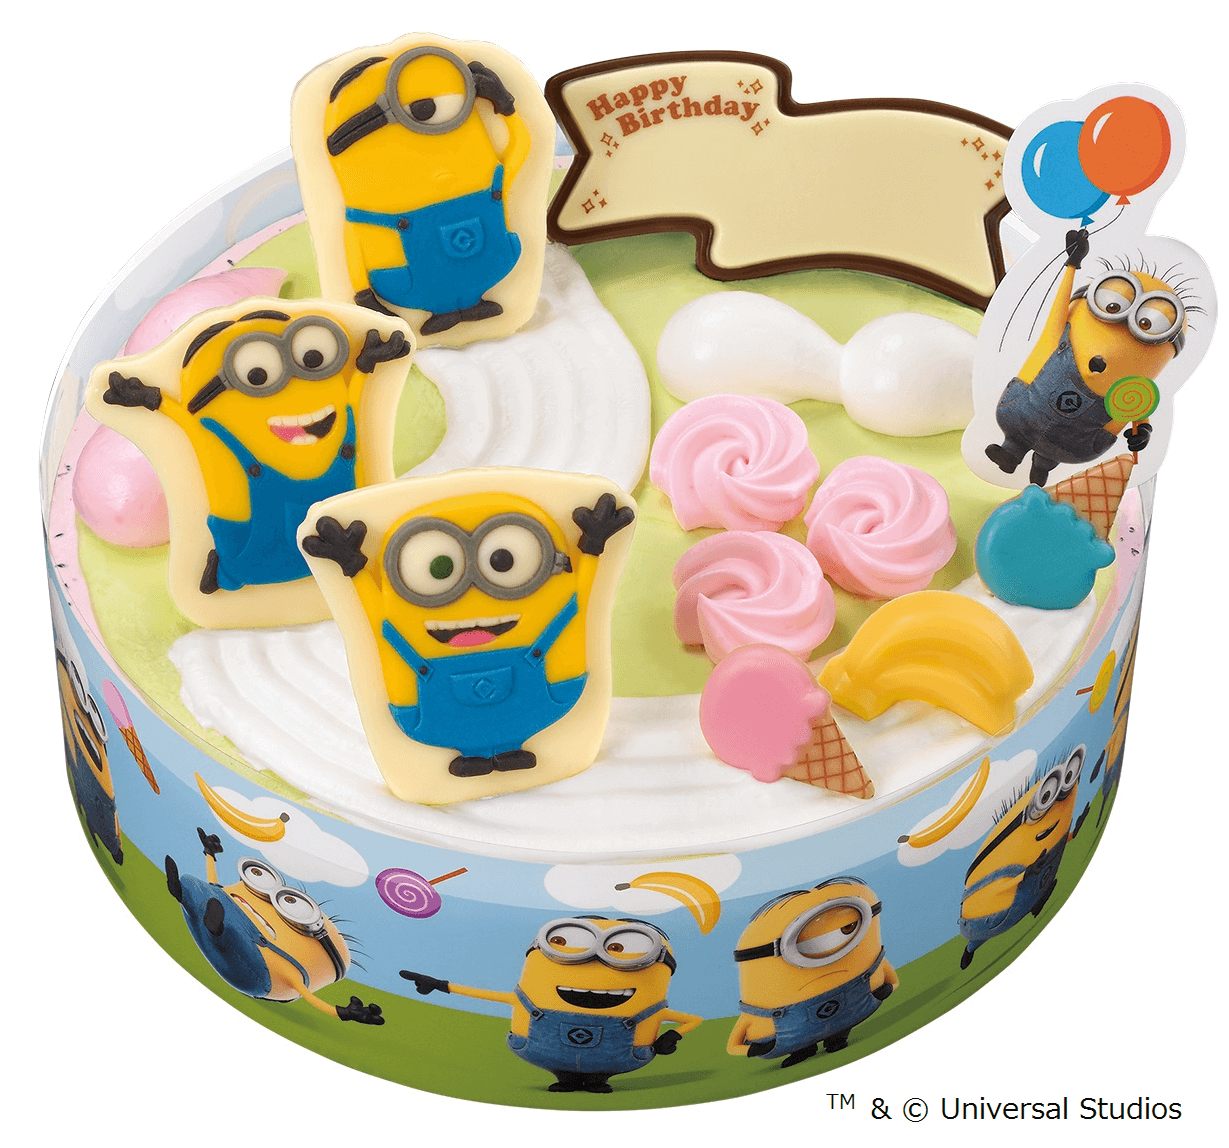 Limited Edition Minions Ice Cream To Be Sold This Summer At Baskin Robbins In Japan